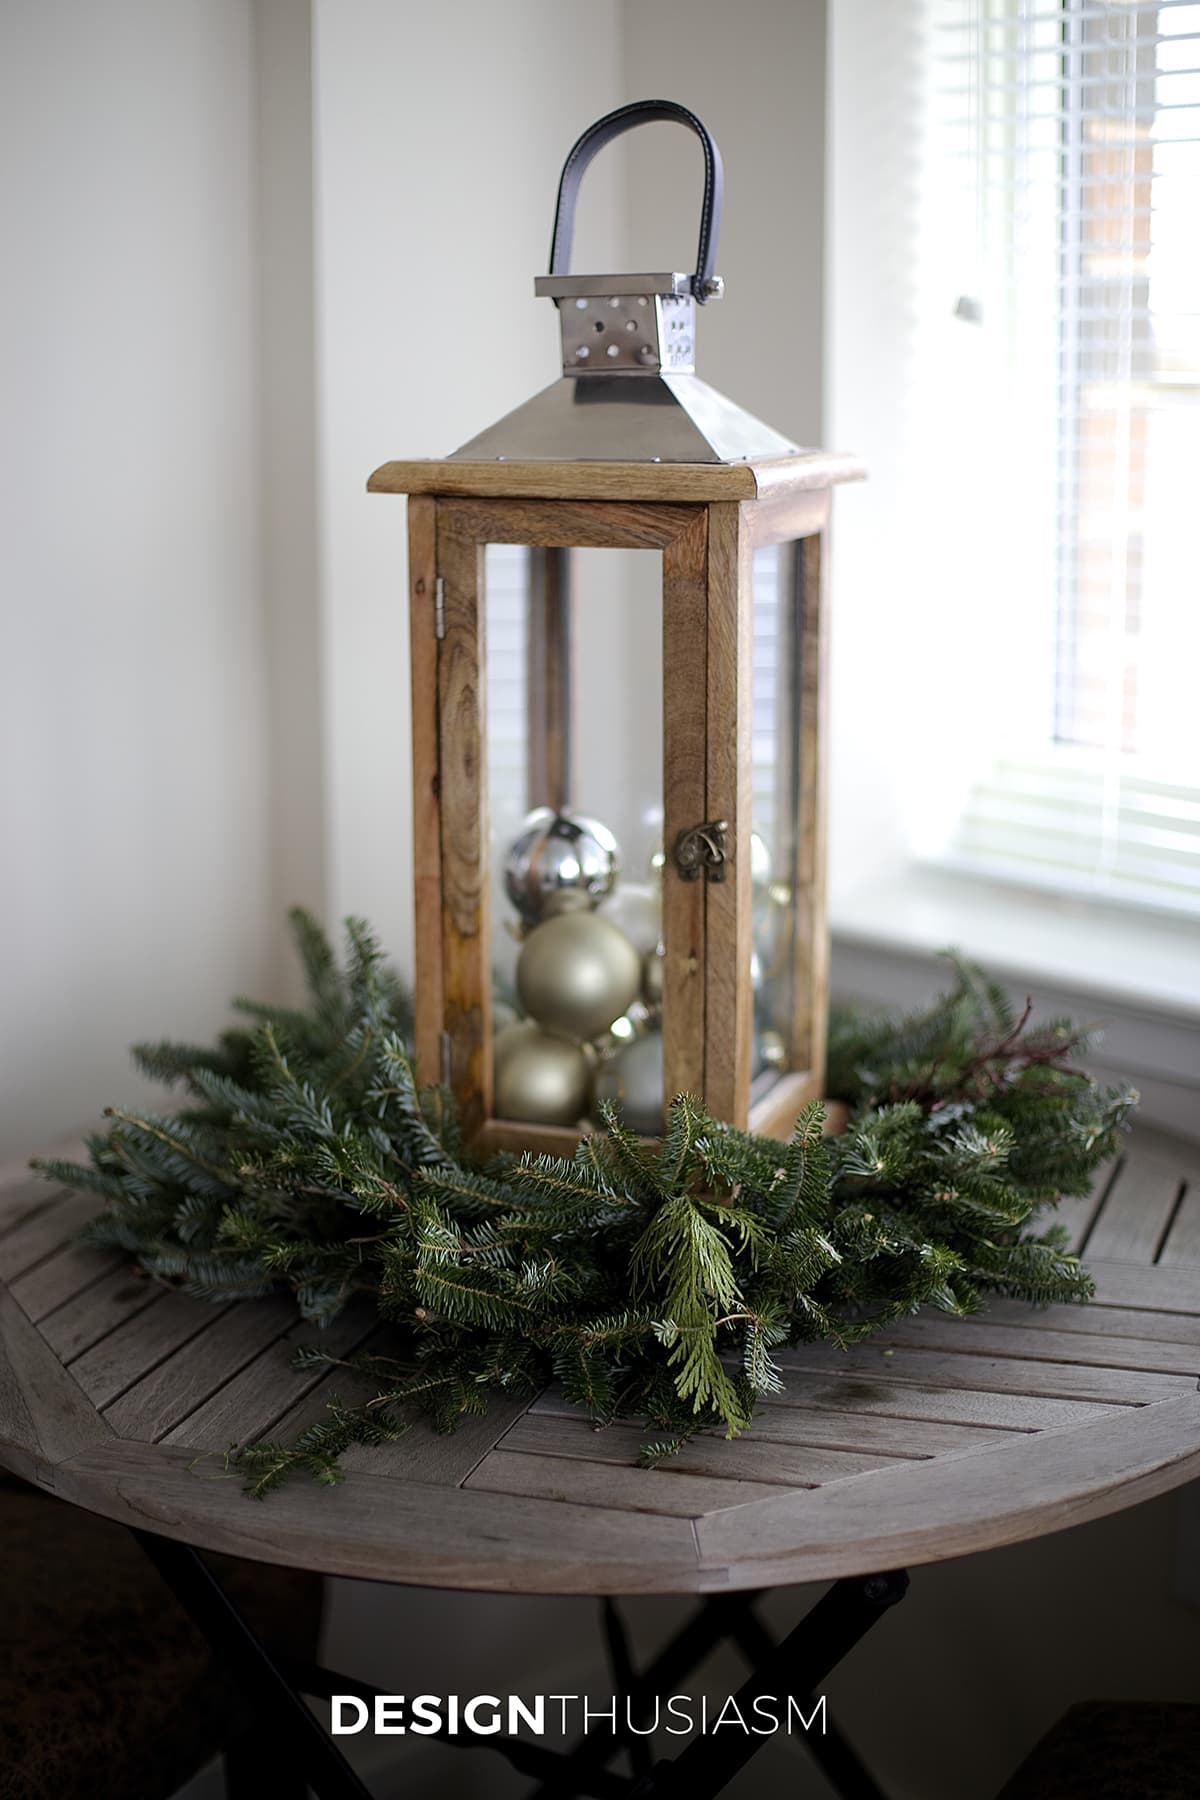 Merveilleux Holiday Decorating Ideas For A Small Apartment | Designthusiasm.com